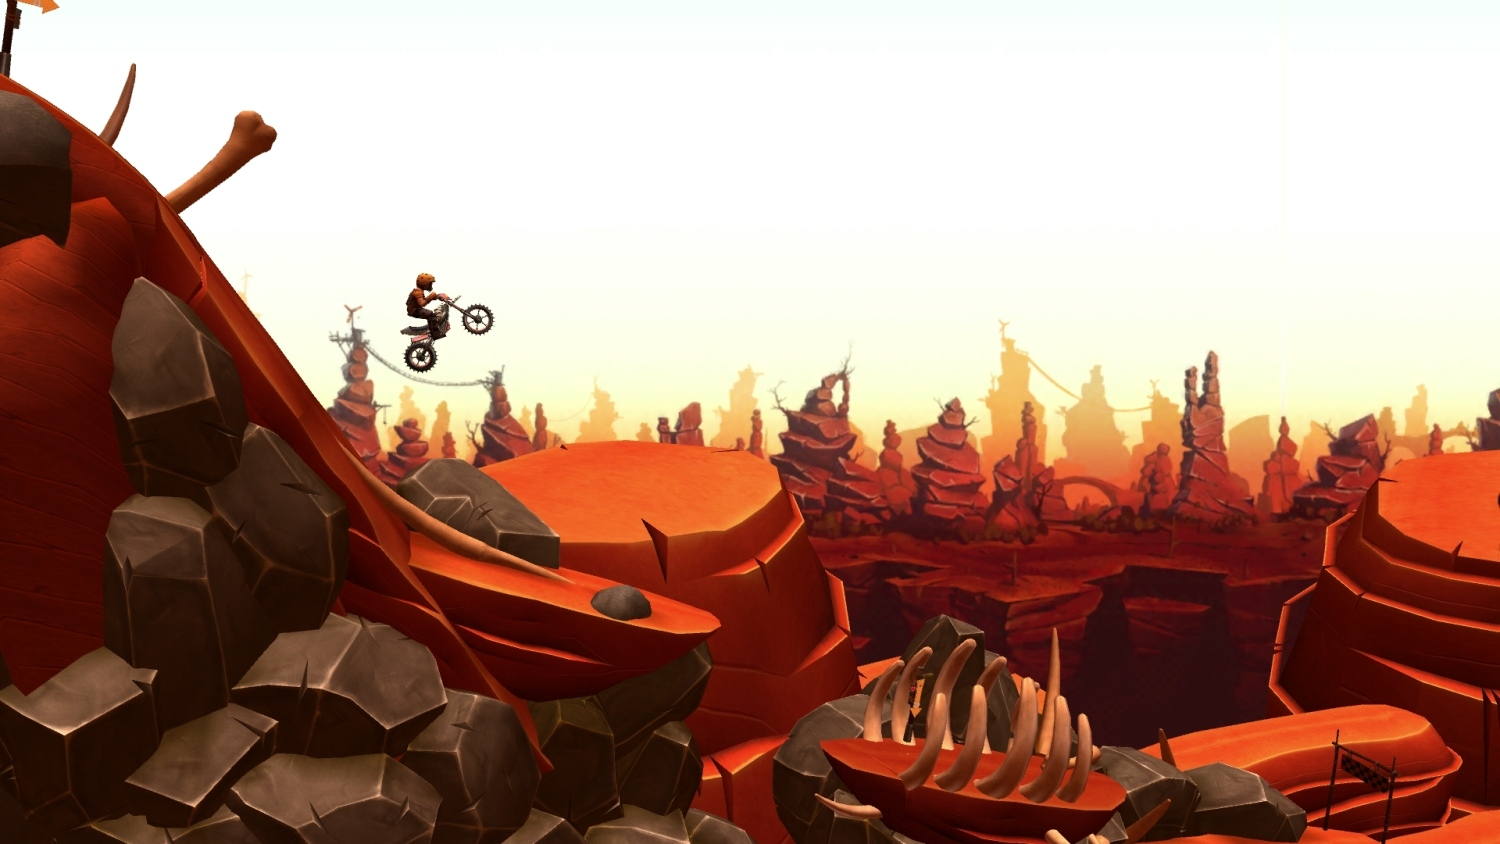 Hands-on with Trials Frontier - can this XBLA classic work with an energy system?